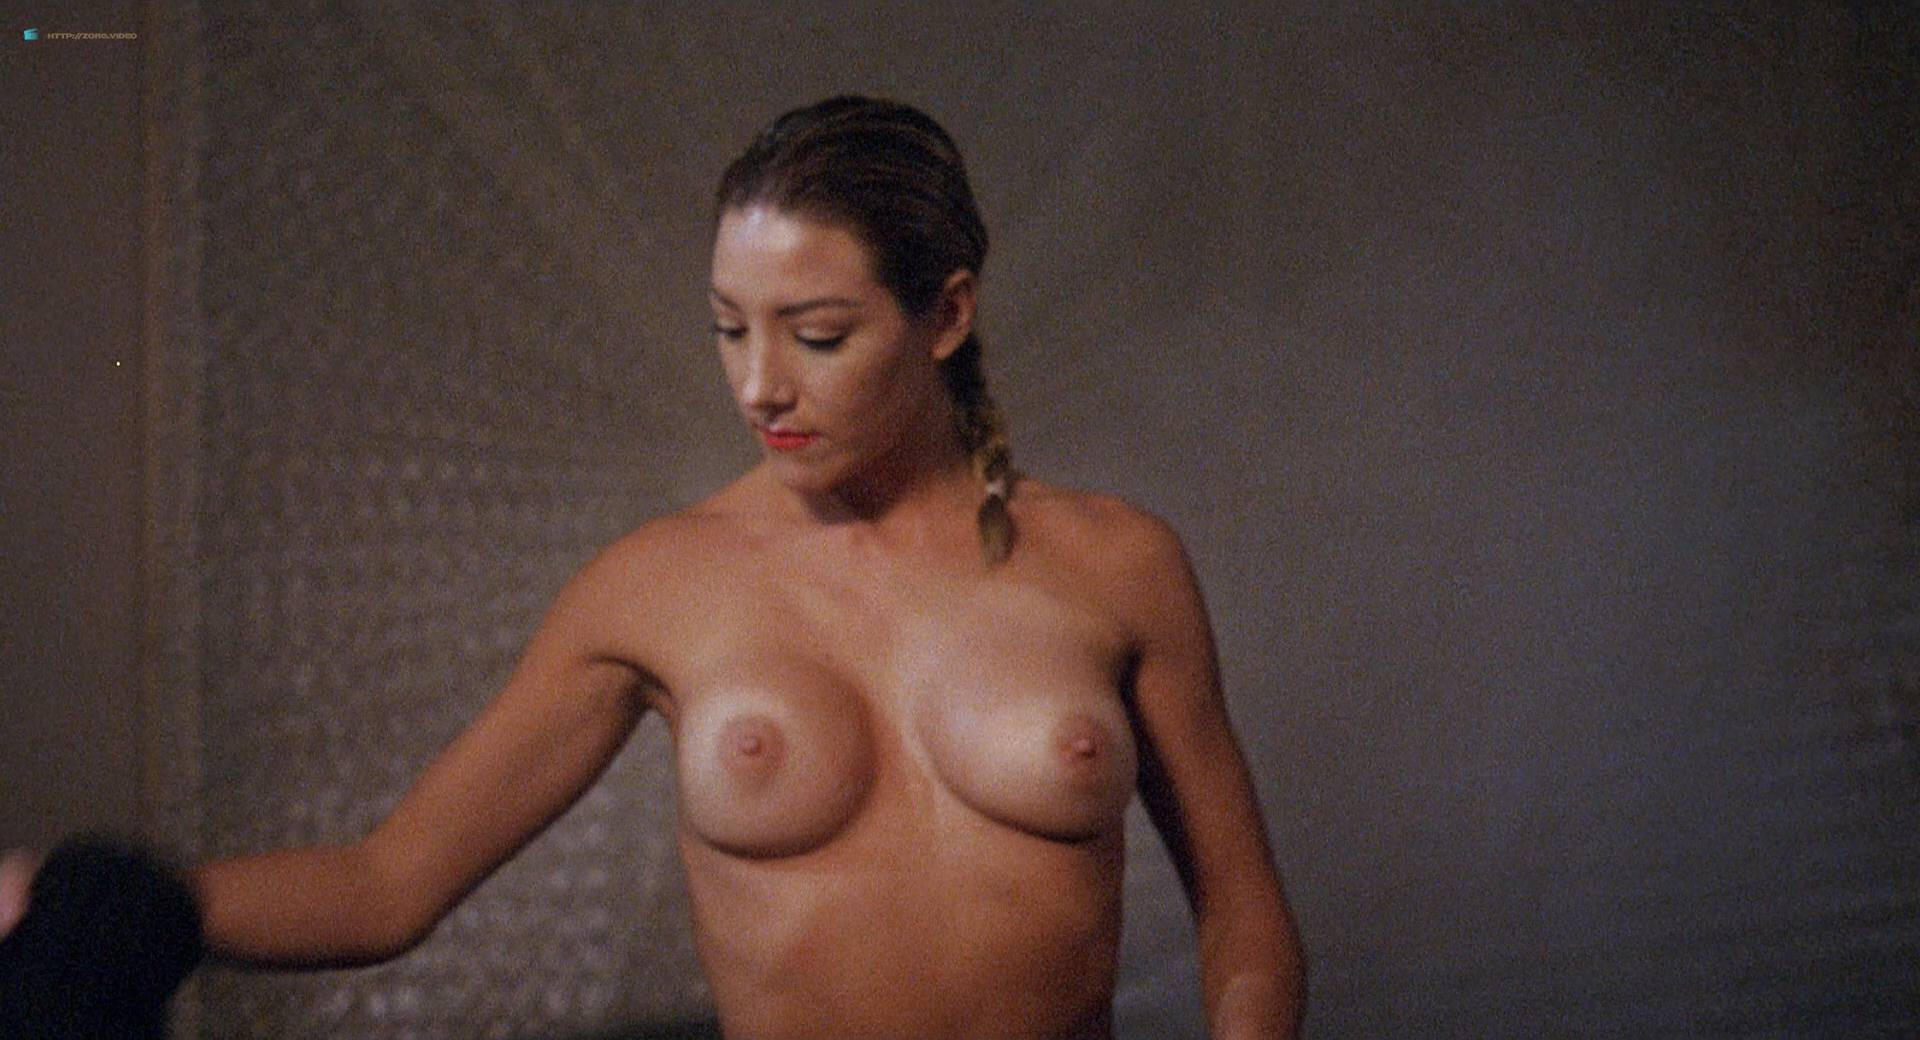 Roxanna Michaels nude Tiffany Million and others nude bush butt - Caged Fury (1989) HD 1080p BluRay (14)